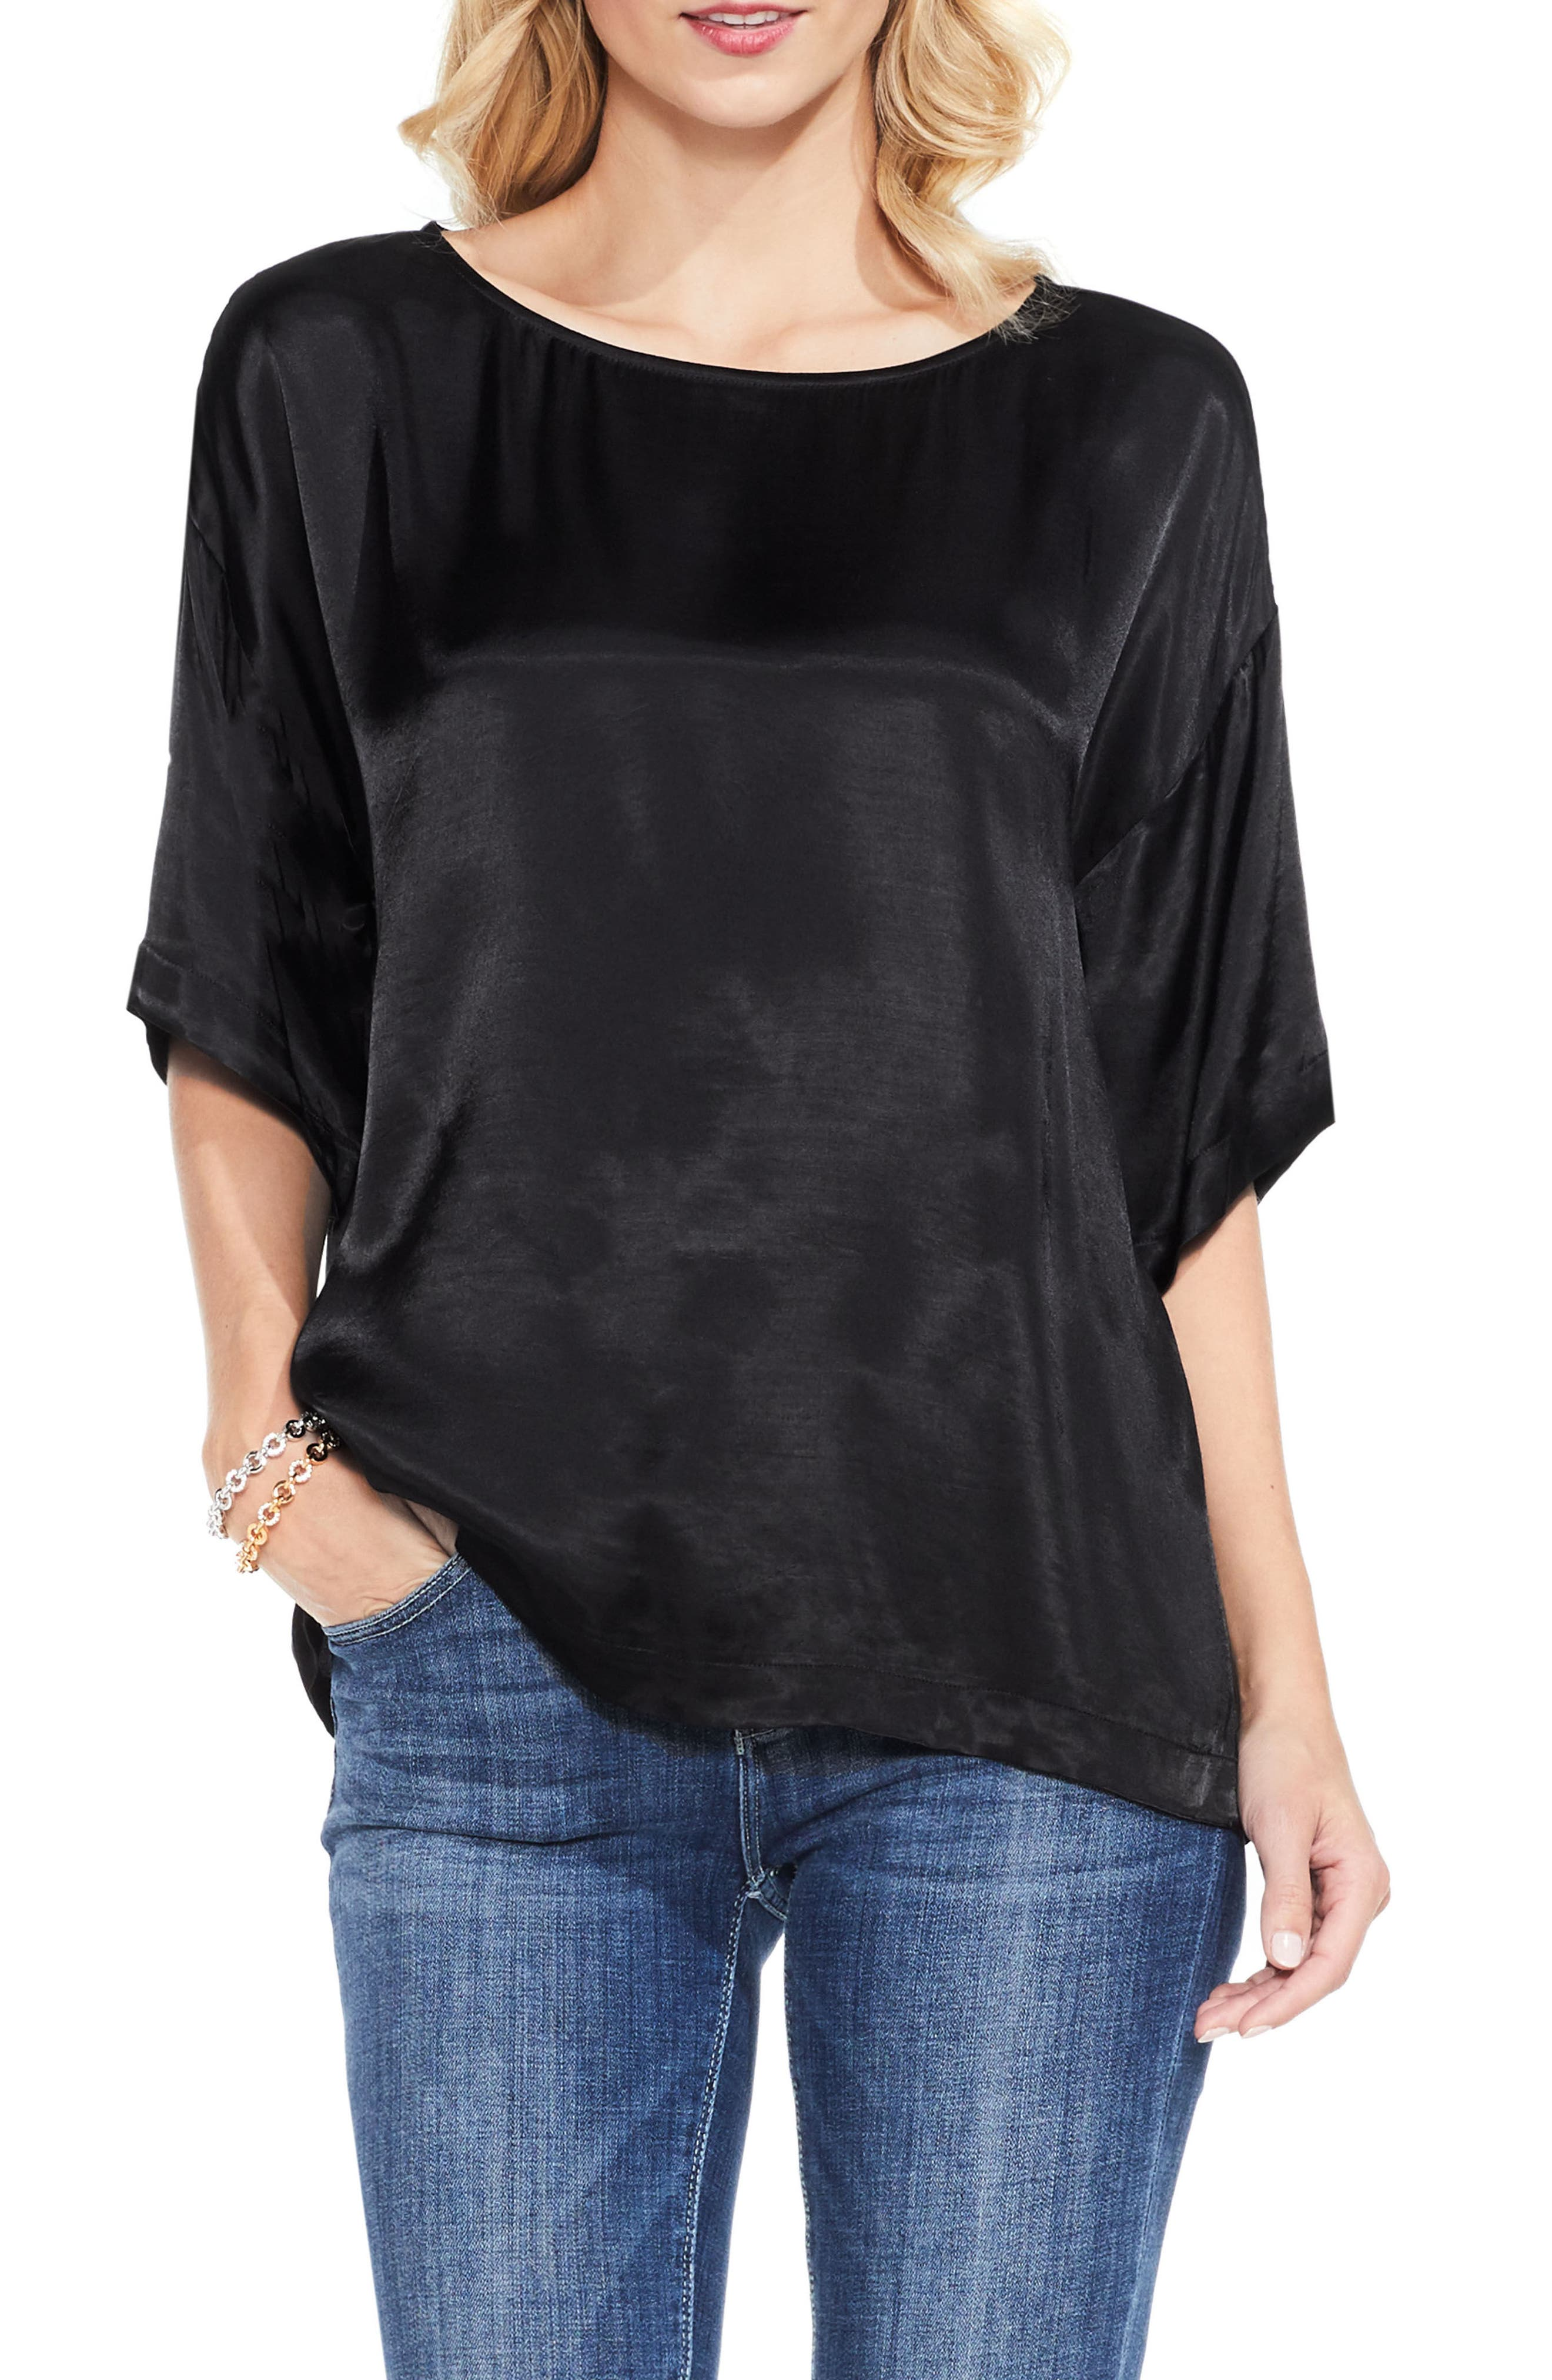 Main Image - Two by Vince Camuto Satin Tee